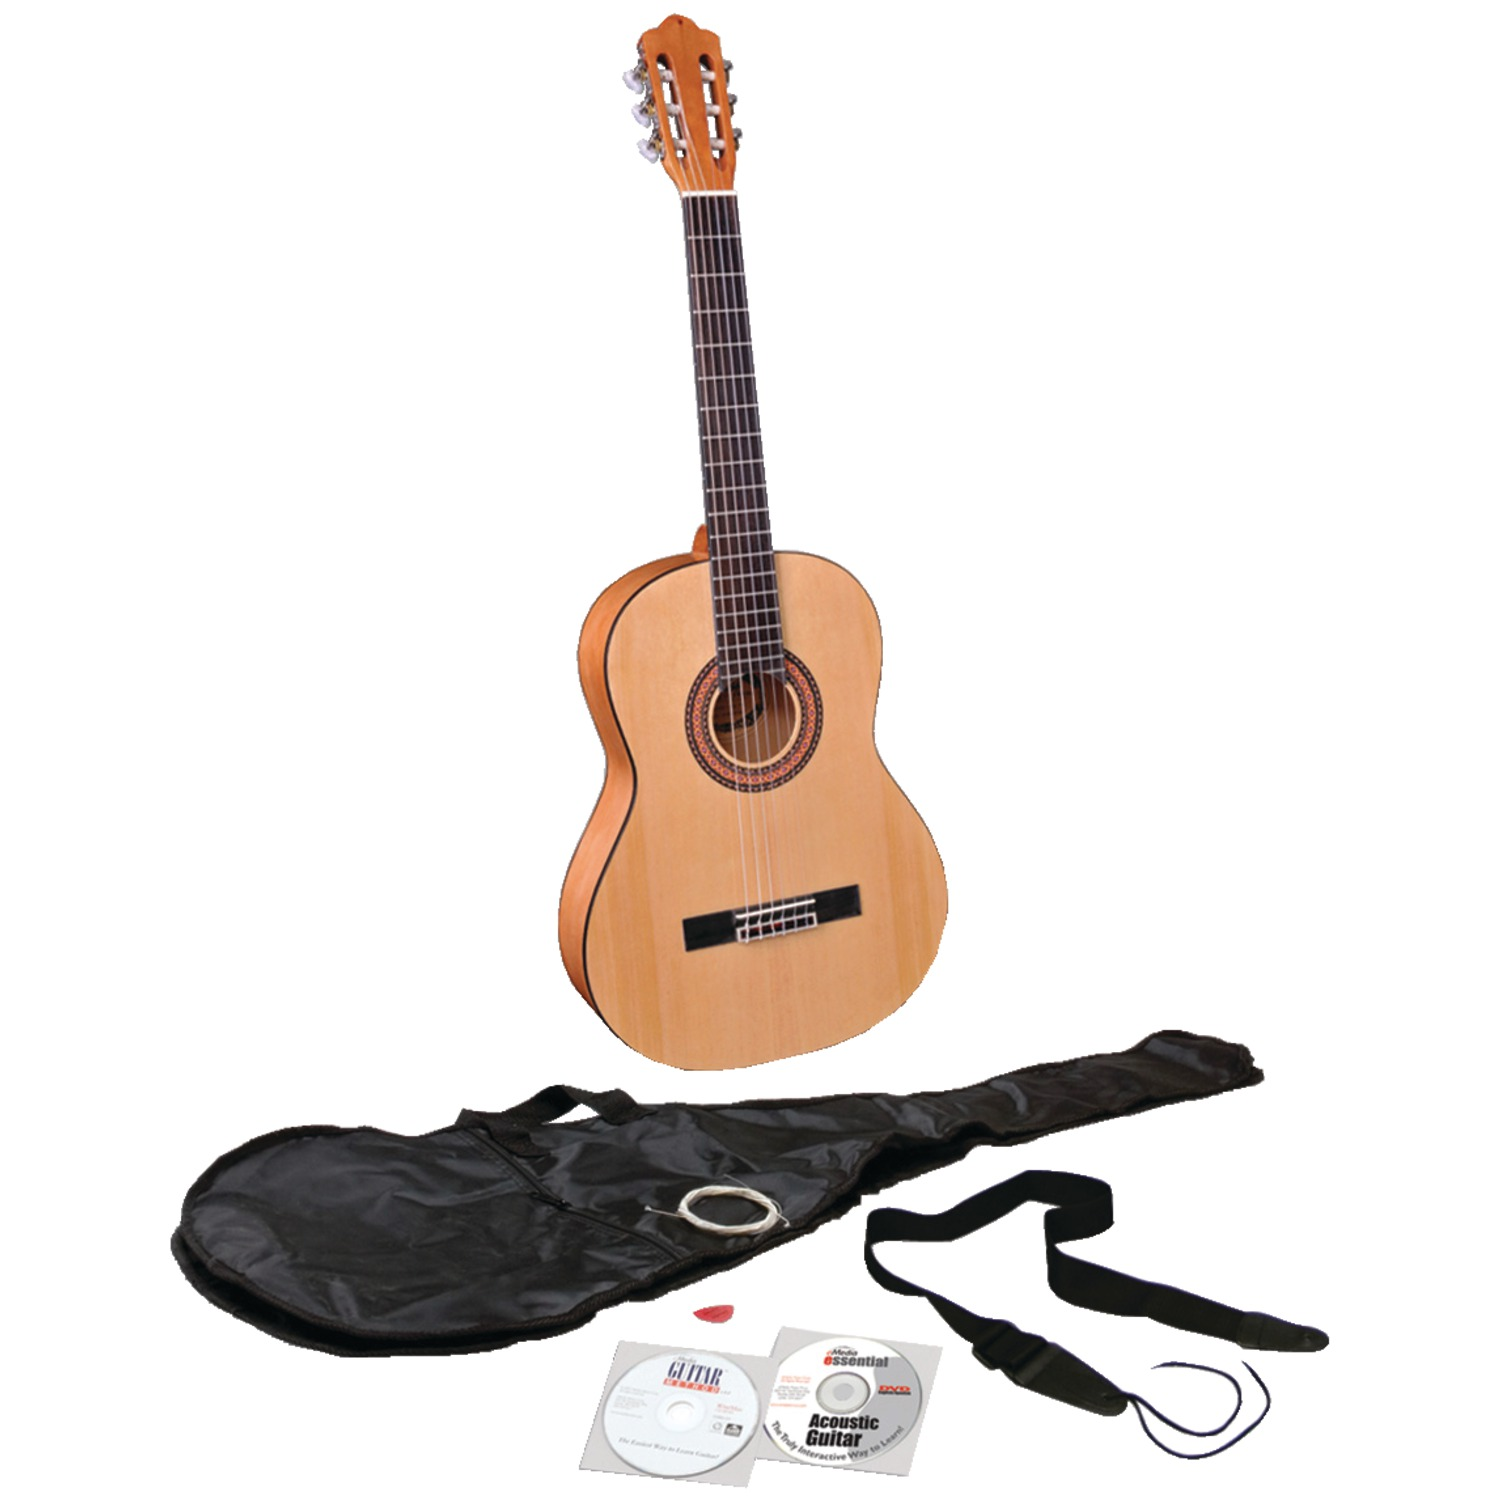 eMedia Music EG07107 Teach Yourself Classical Guitar Pack V5 with Full-Size Guitar